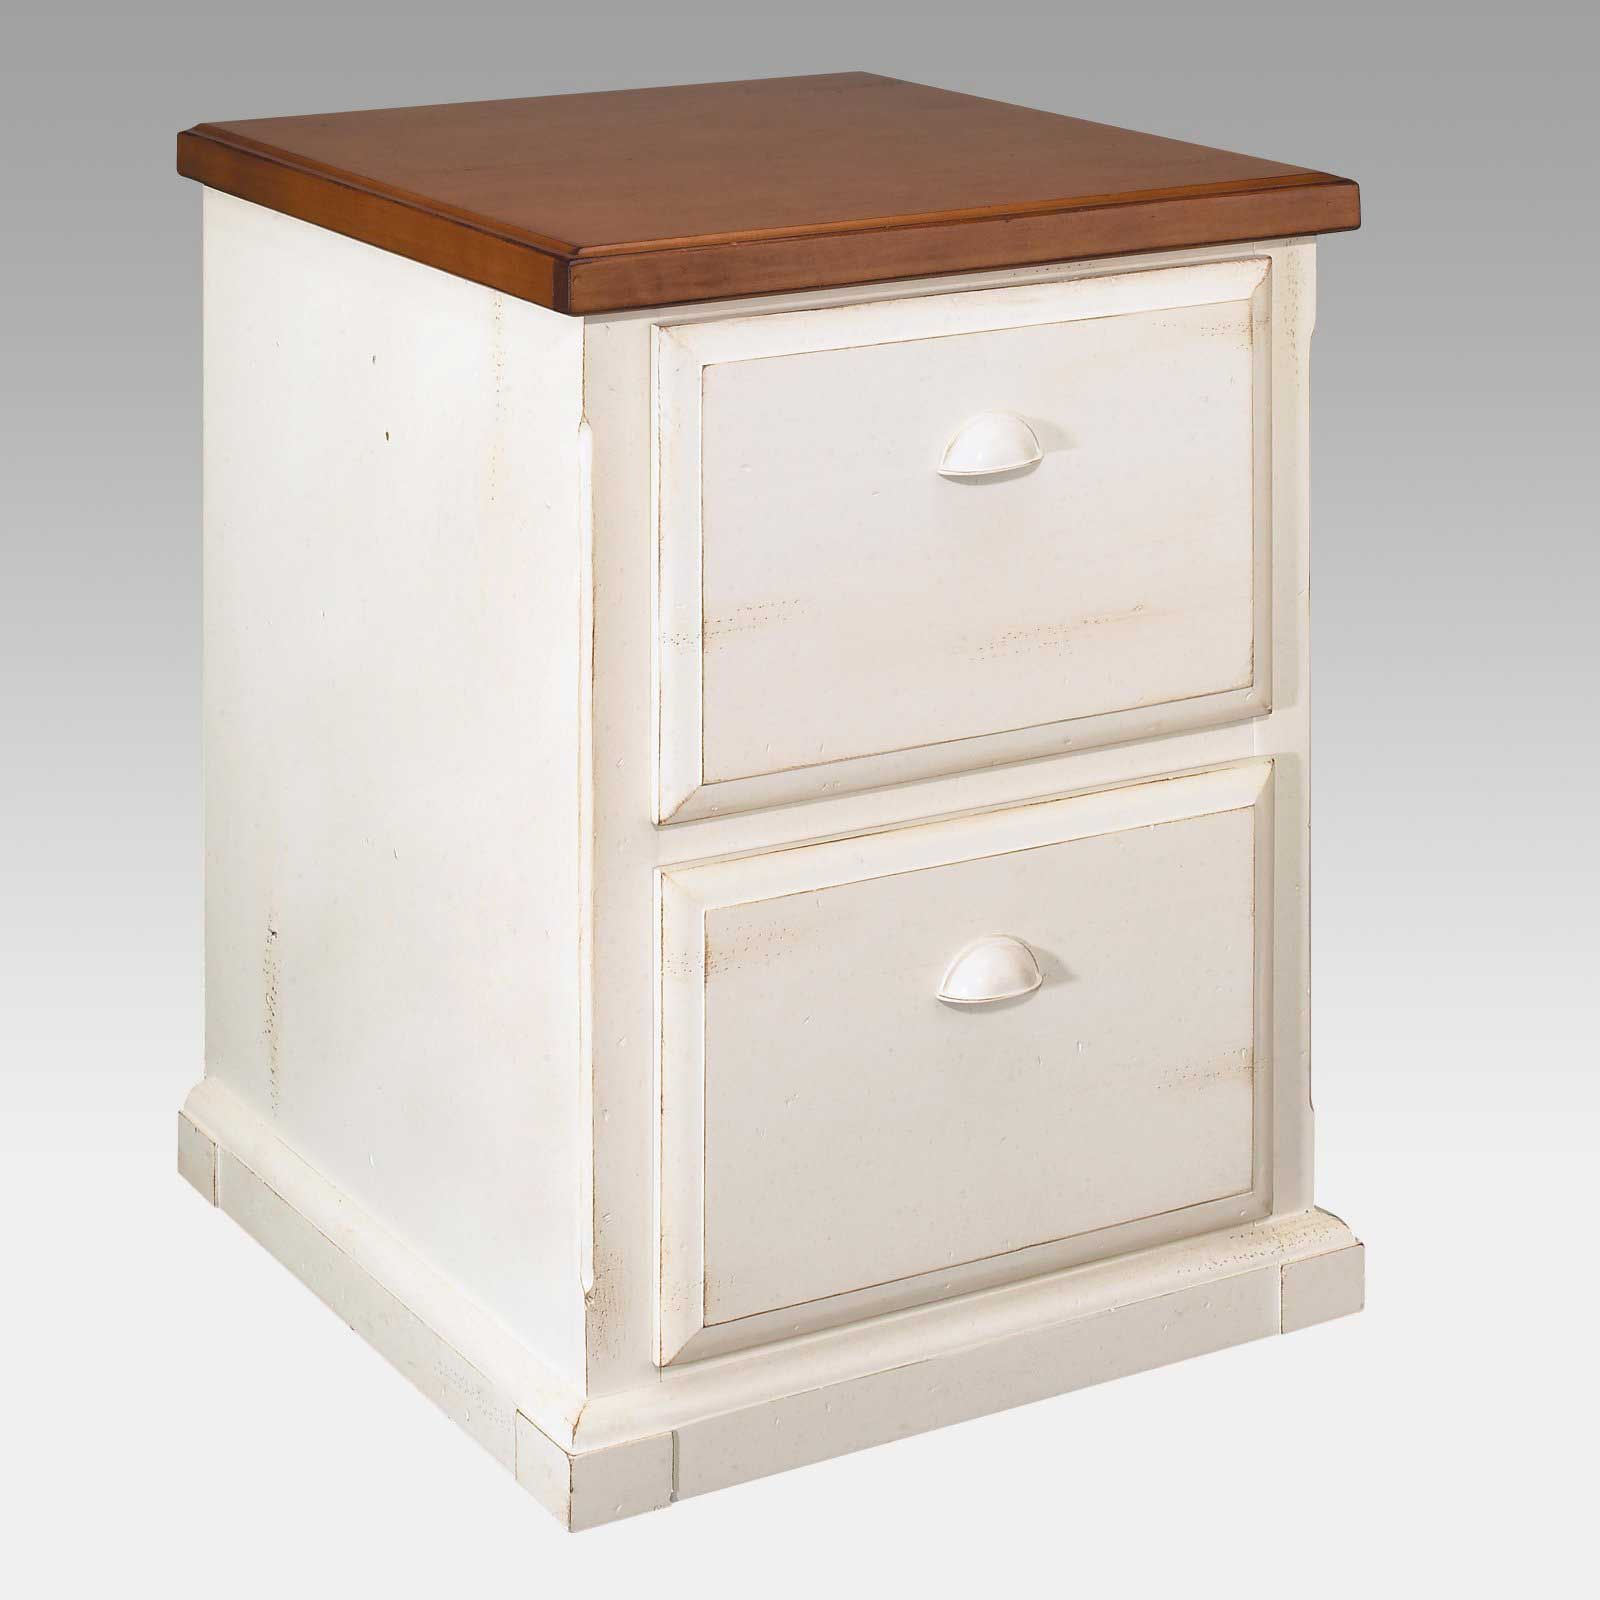 Southampton Two Drawers Vertical White Filing Cabinet Filing Cabinet Martin Furniture Wooden File Cabinet